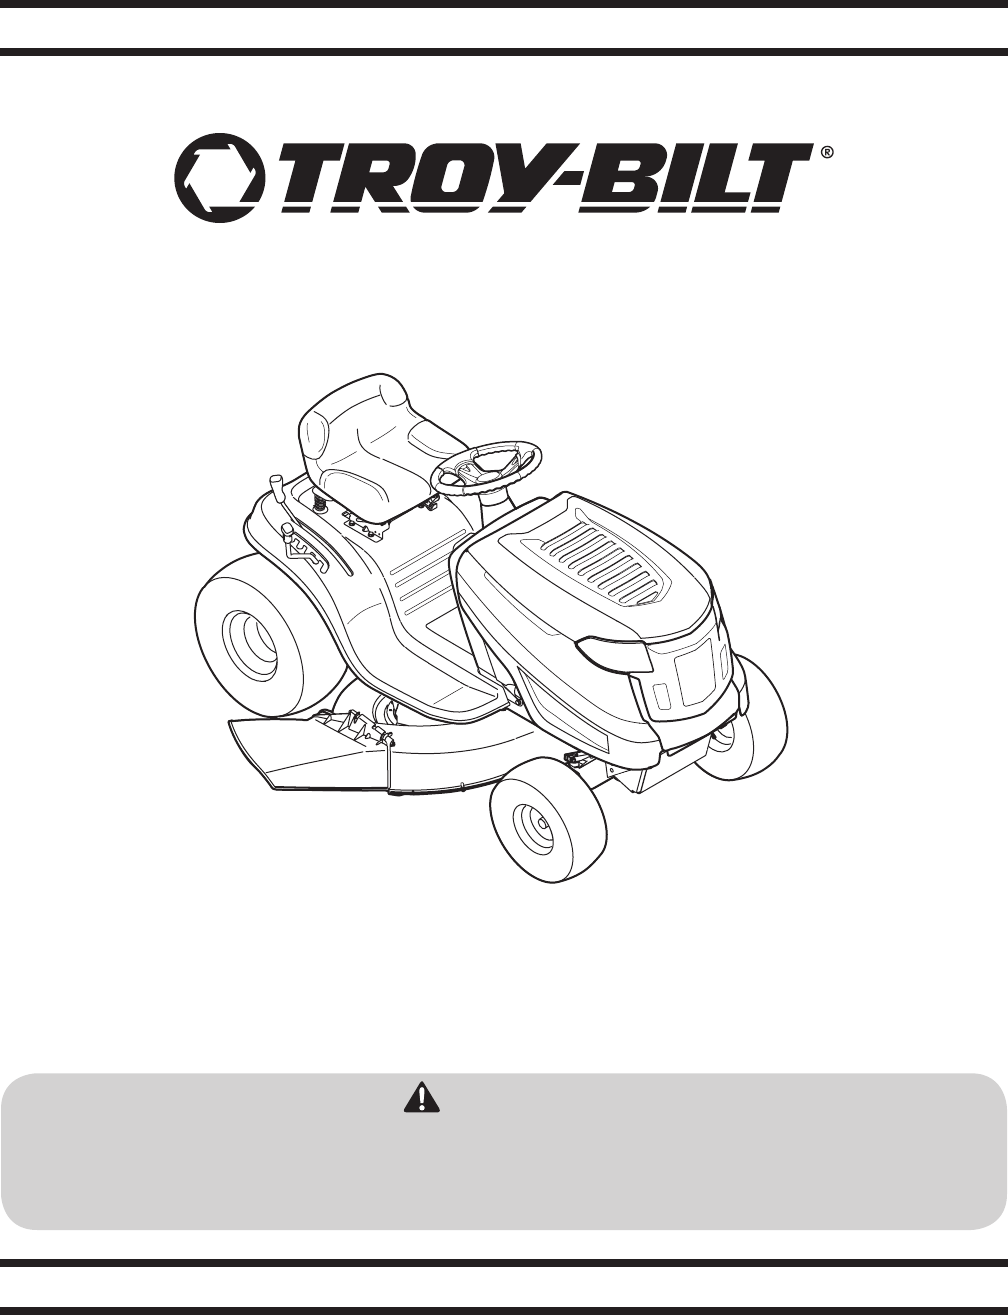 31301 further T25605830 Ltx1040 drive belt diagram additionally Solenoid For Murray Riding Mower Wiring Diagram besides Electrical Schematic For Riding Lawn further How To Replace An Ignition Coil On A Riding Lawn Mower. on troy bilt lawn mower wiring diagram